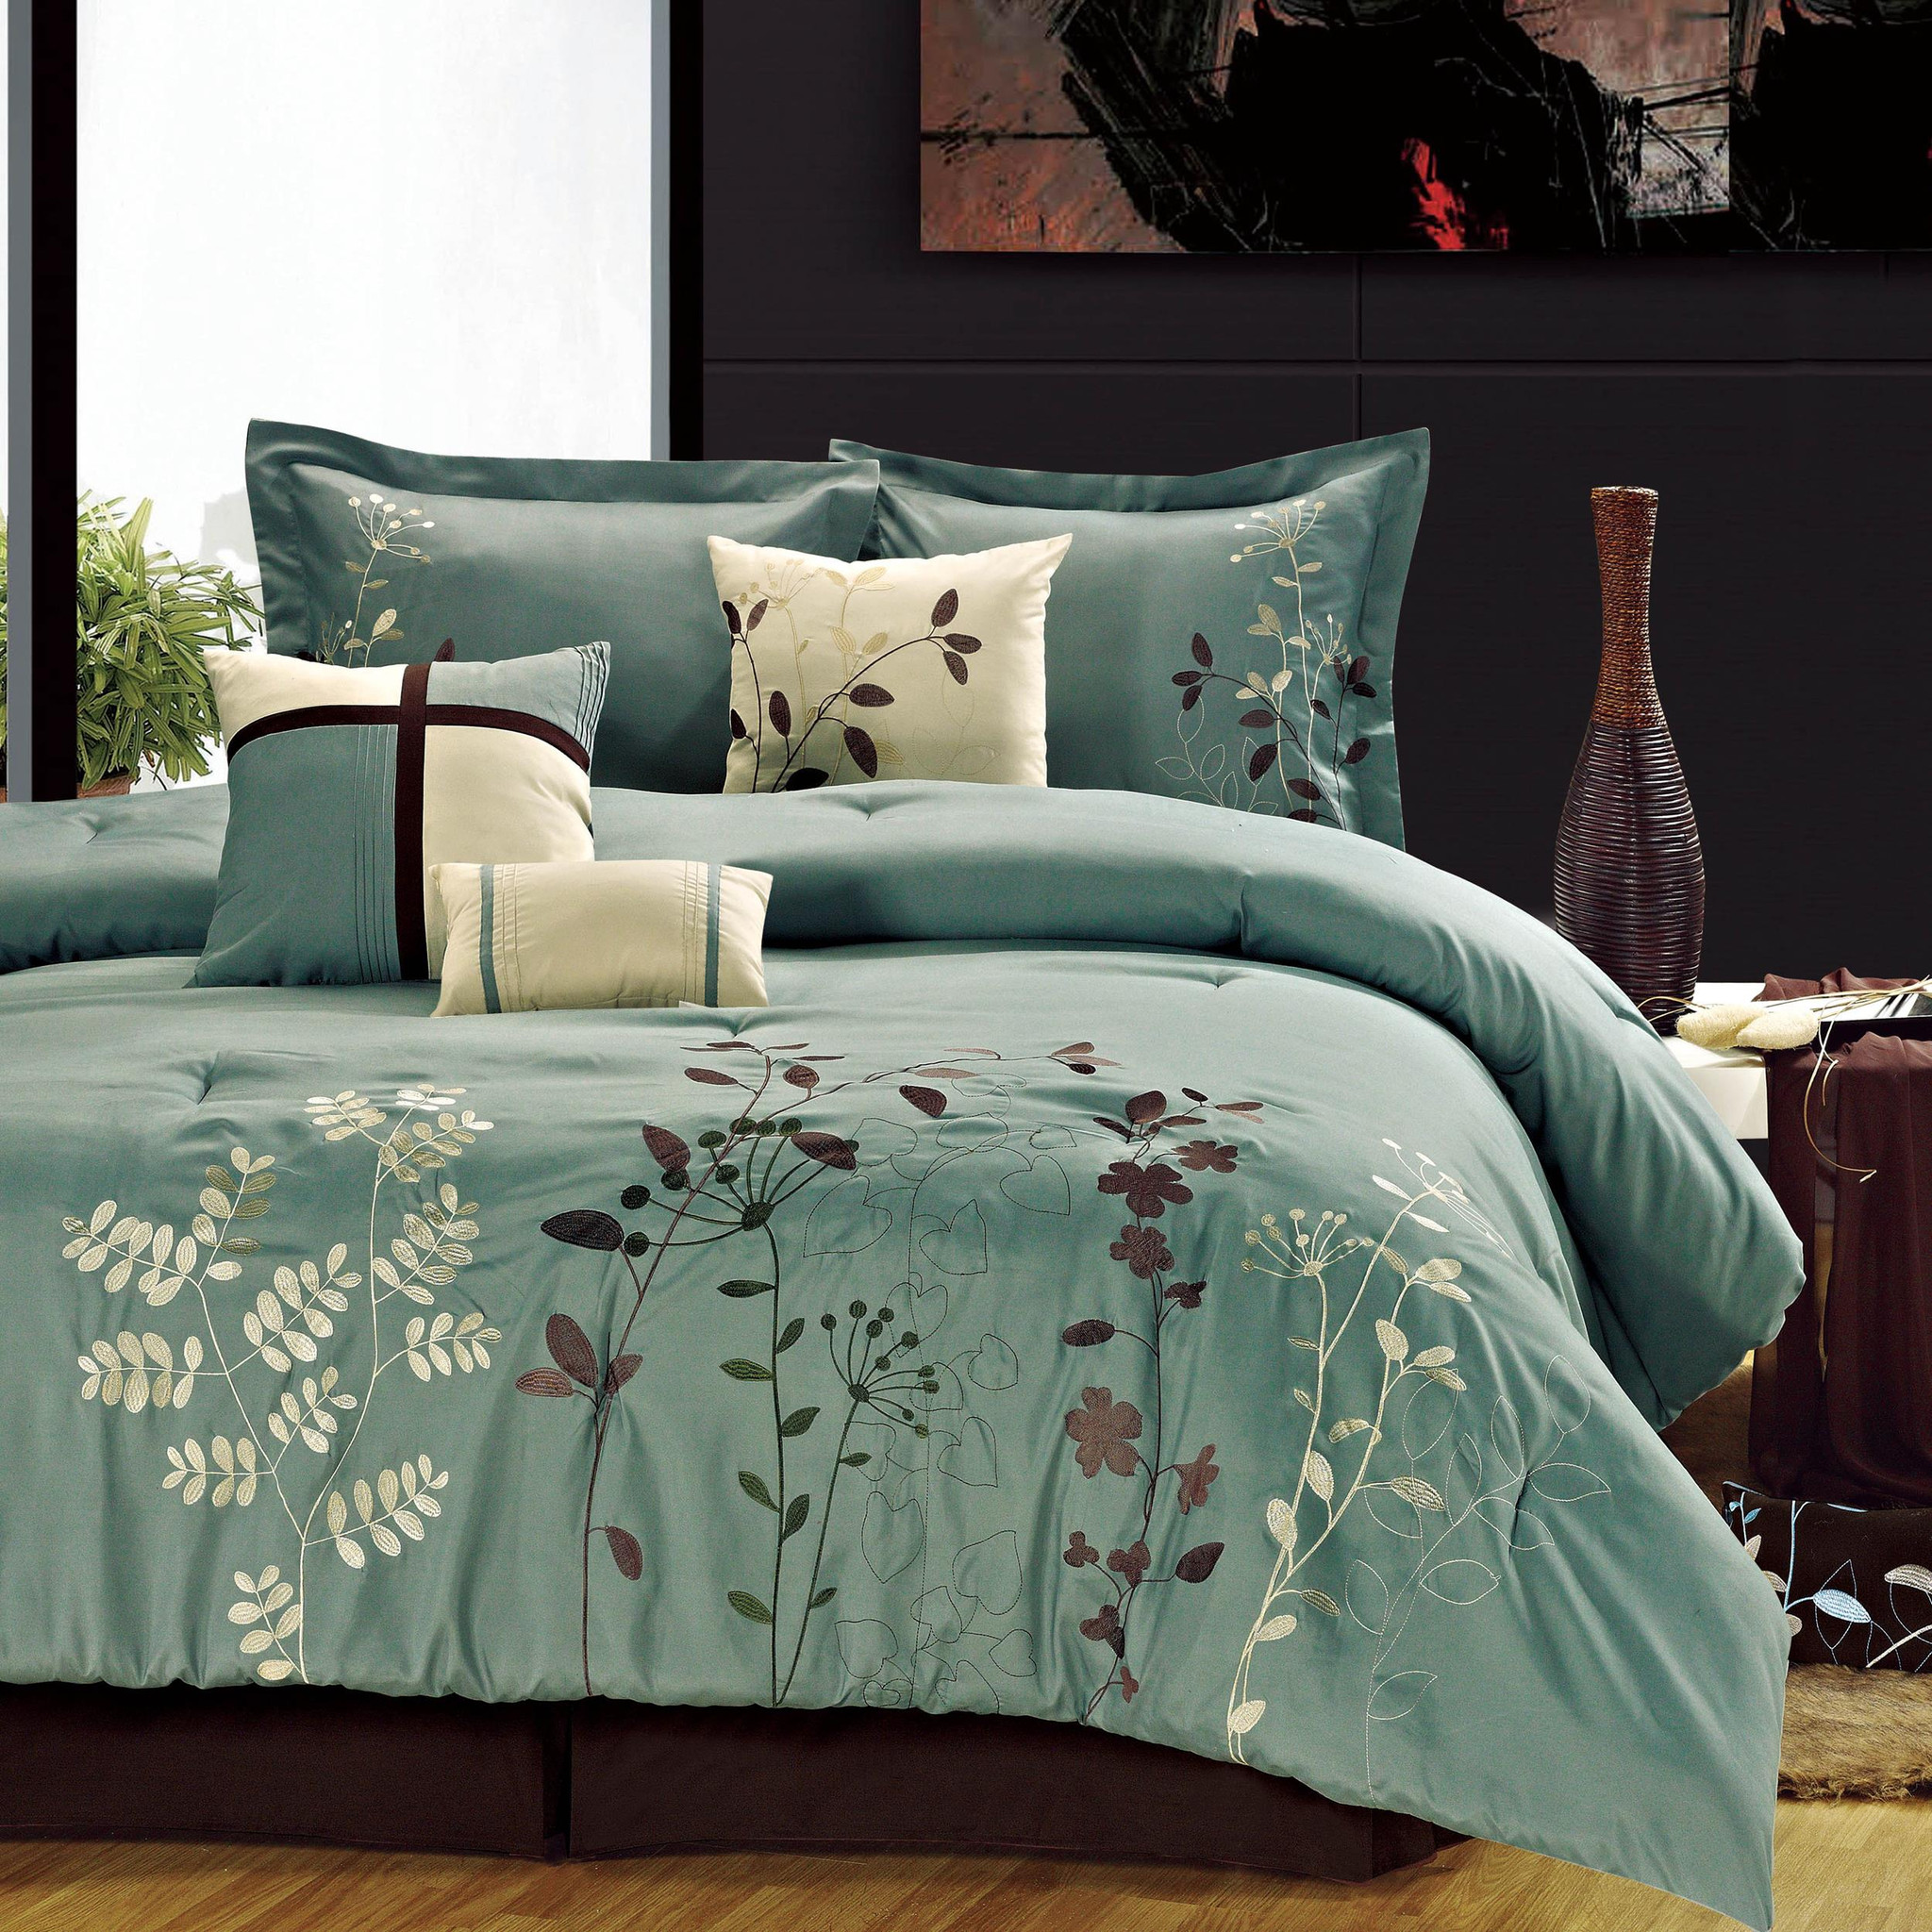 Bliss Garden Sage Comforter Bed In A Bag Set with Sheet Set 12 Piece